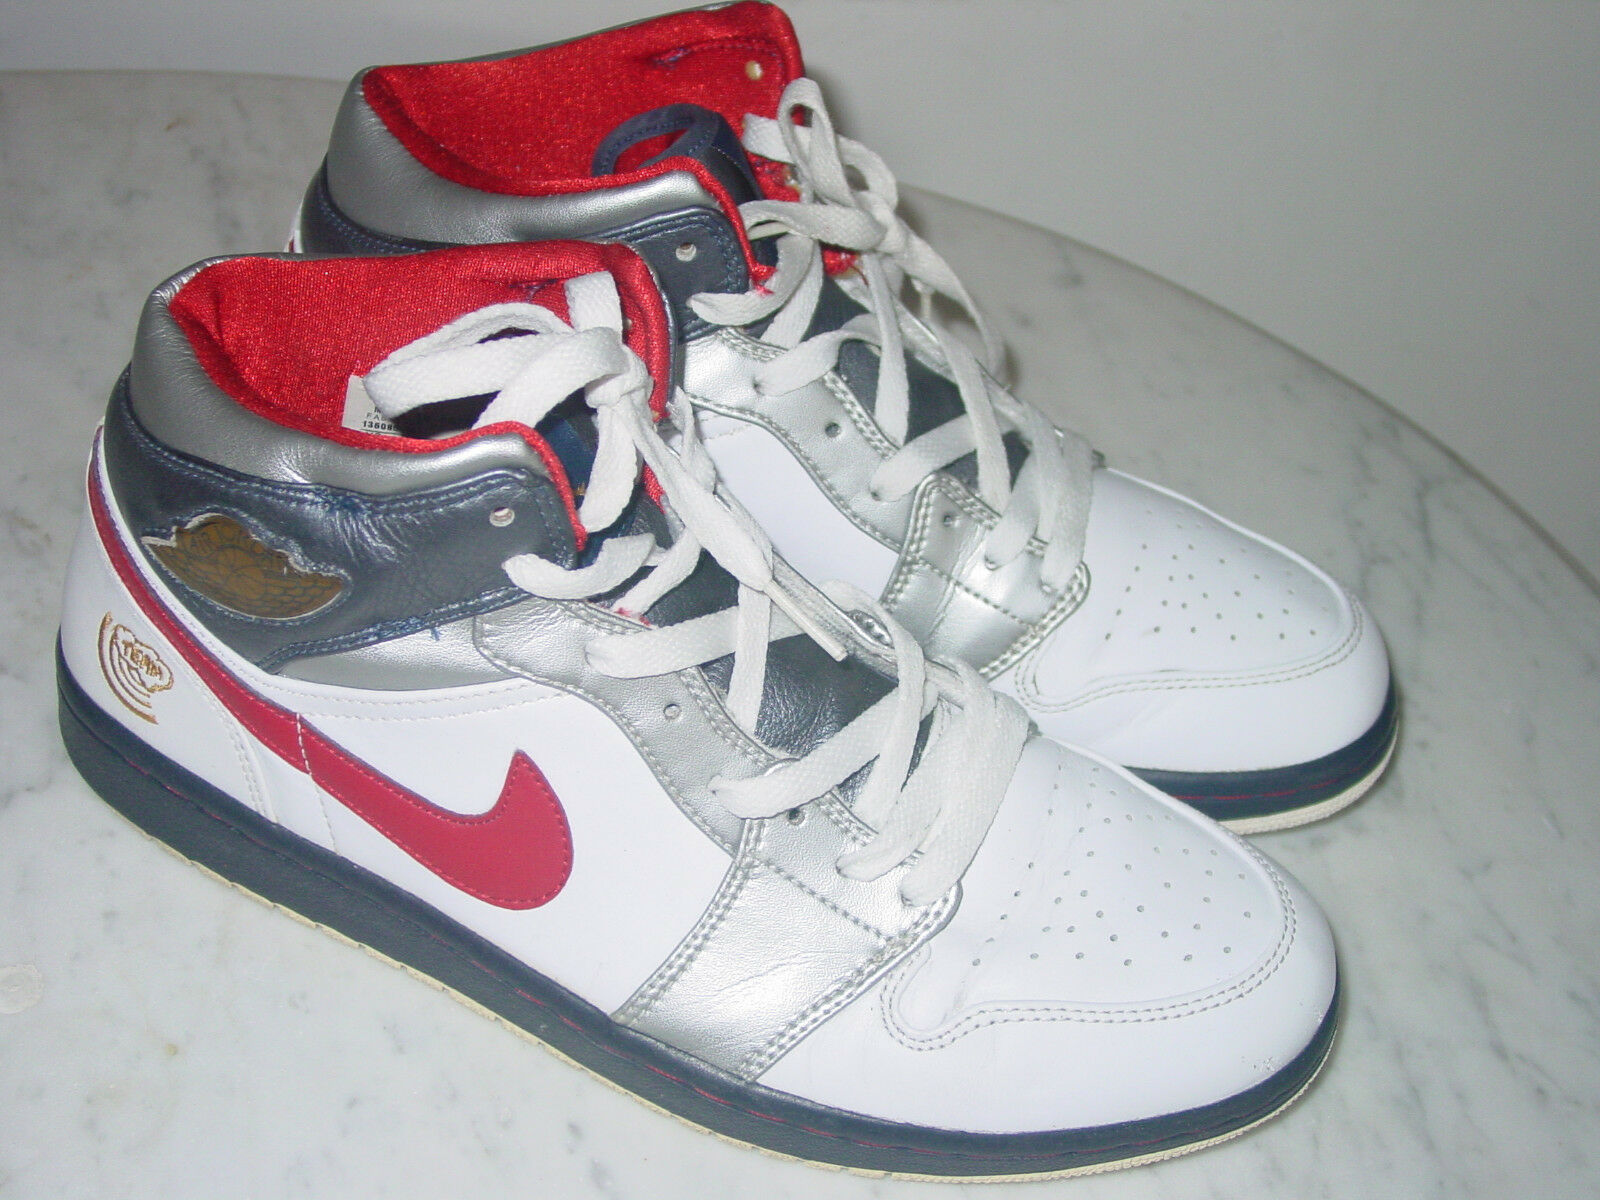 2008 Nike Air Jordan Retro 1  Olympic  White Varsity Red Navy shoes  Size 10.5